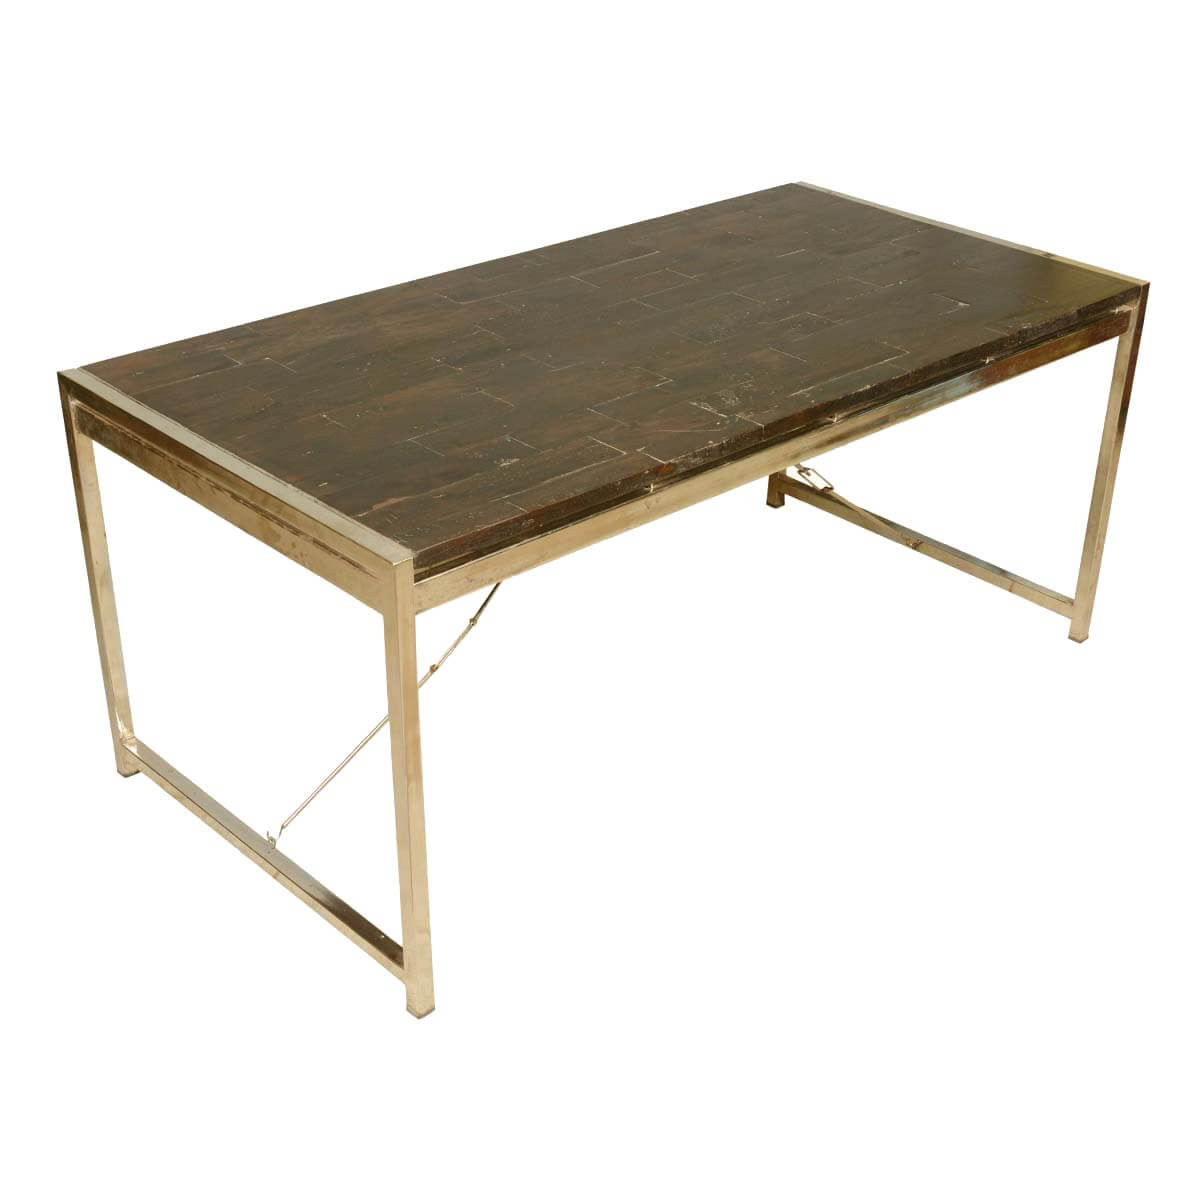 Modern Industrial Mango Wood Iron Rectangular Rustic